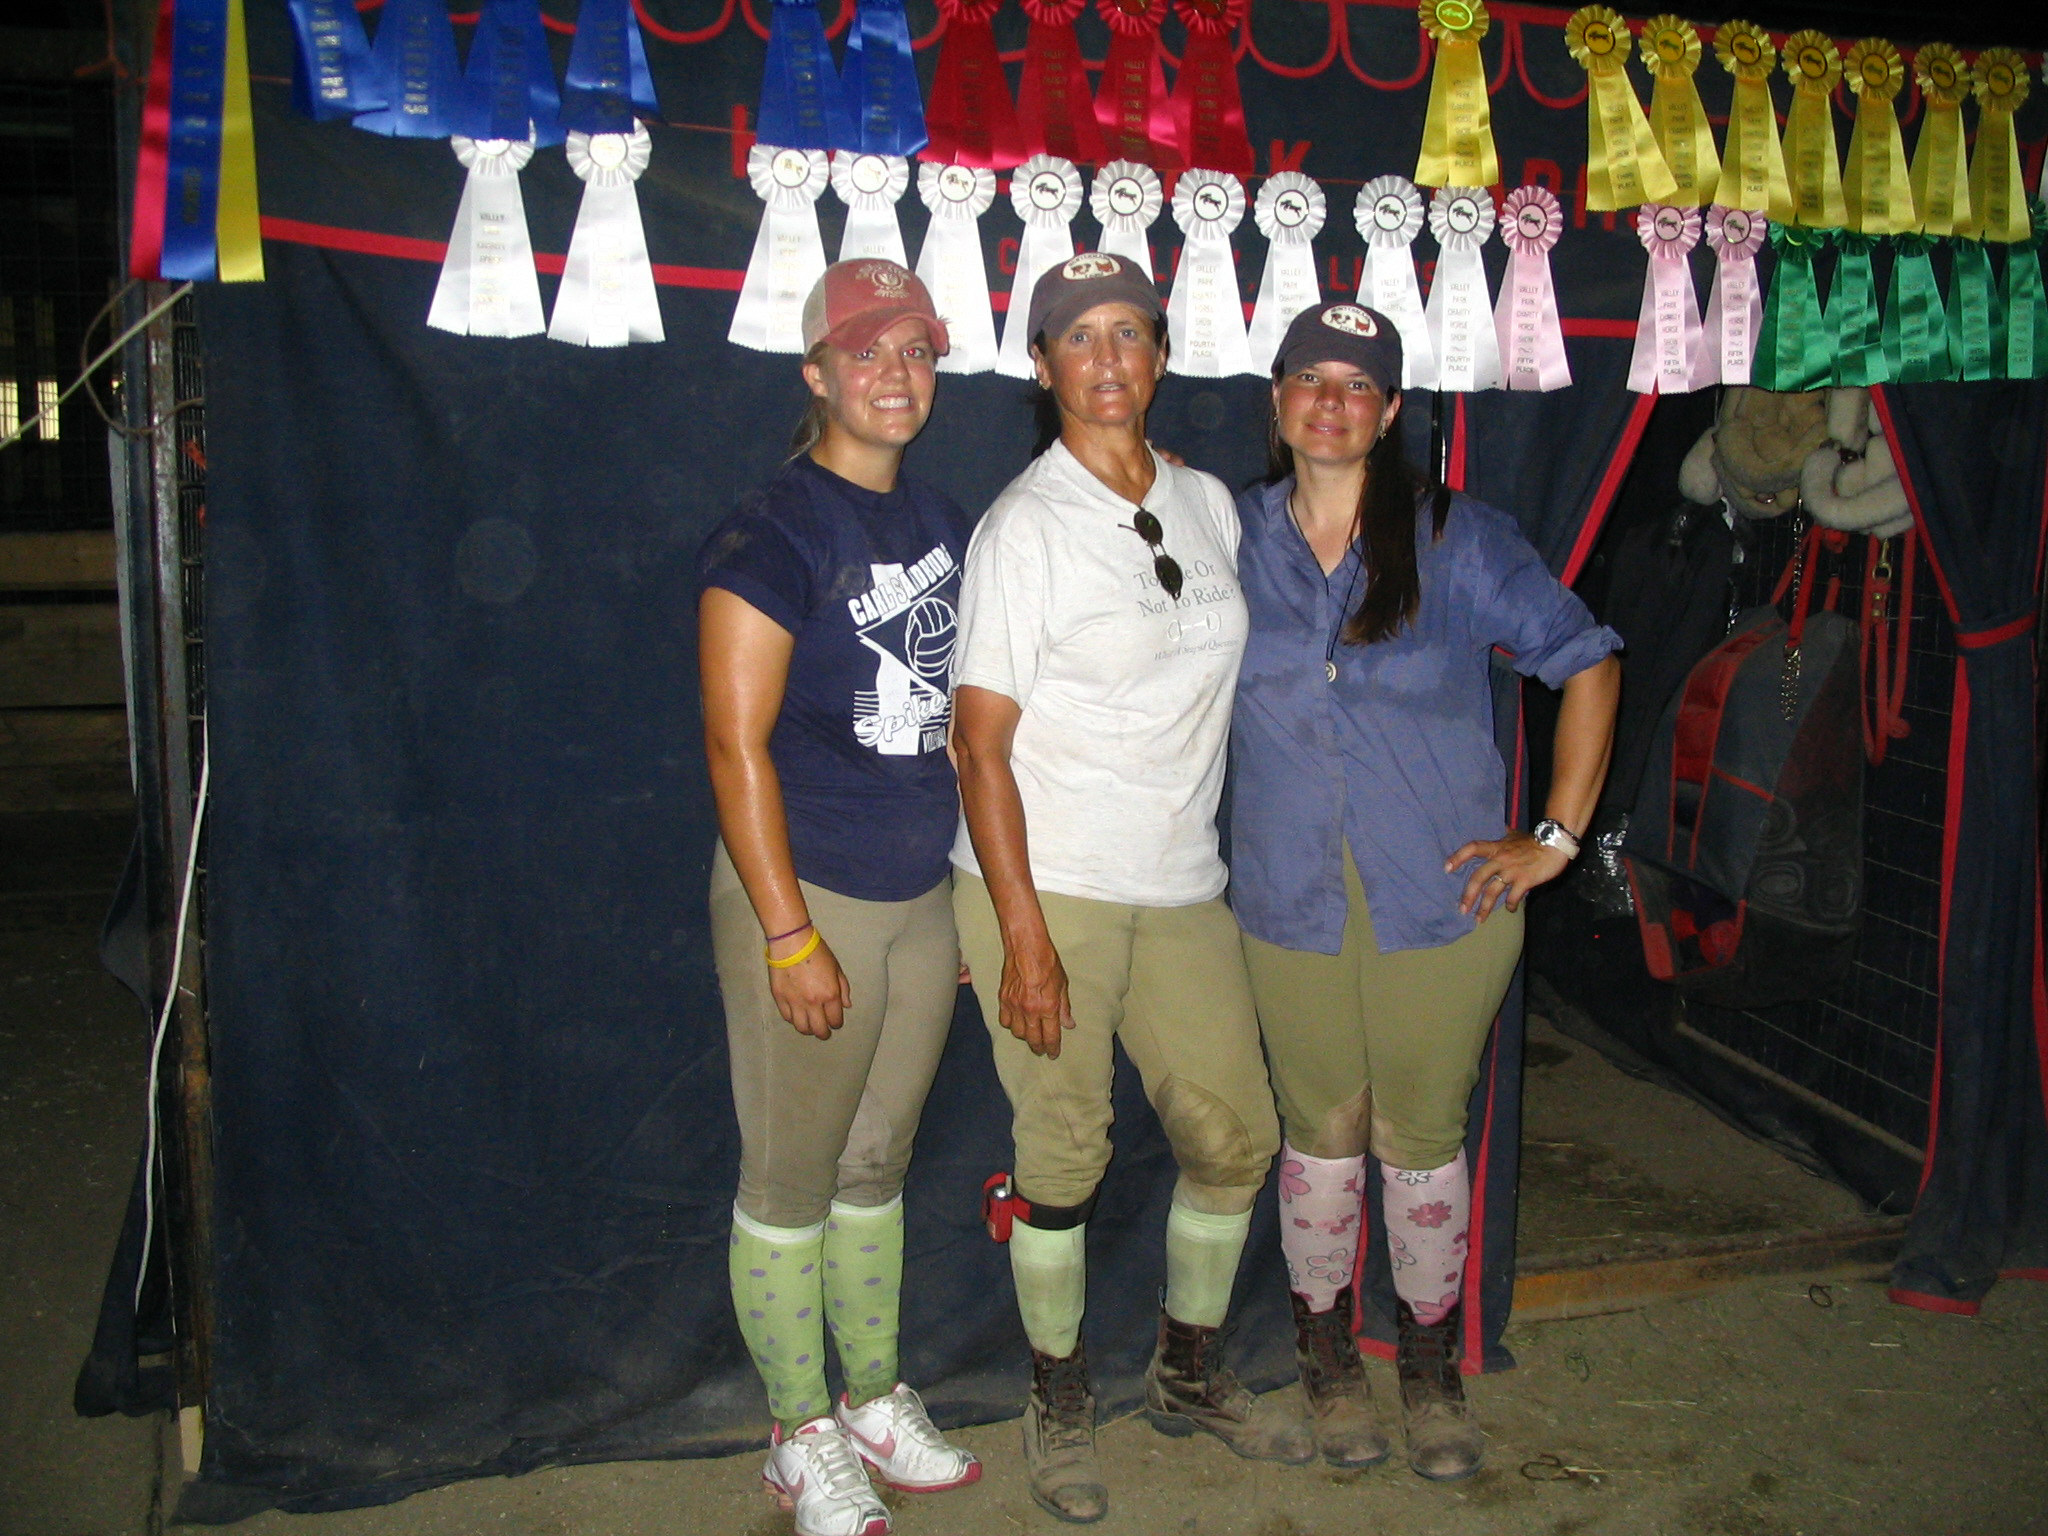 Show team minus Joanna and her ribbons won on her horse Rock Opera